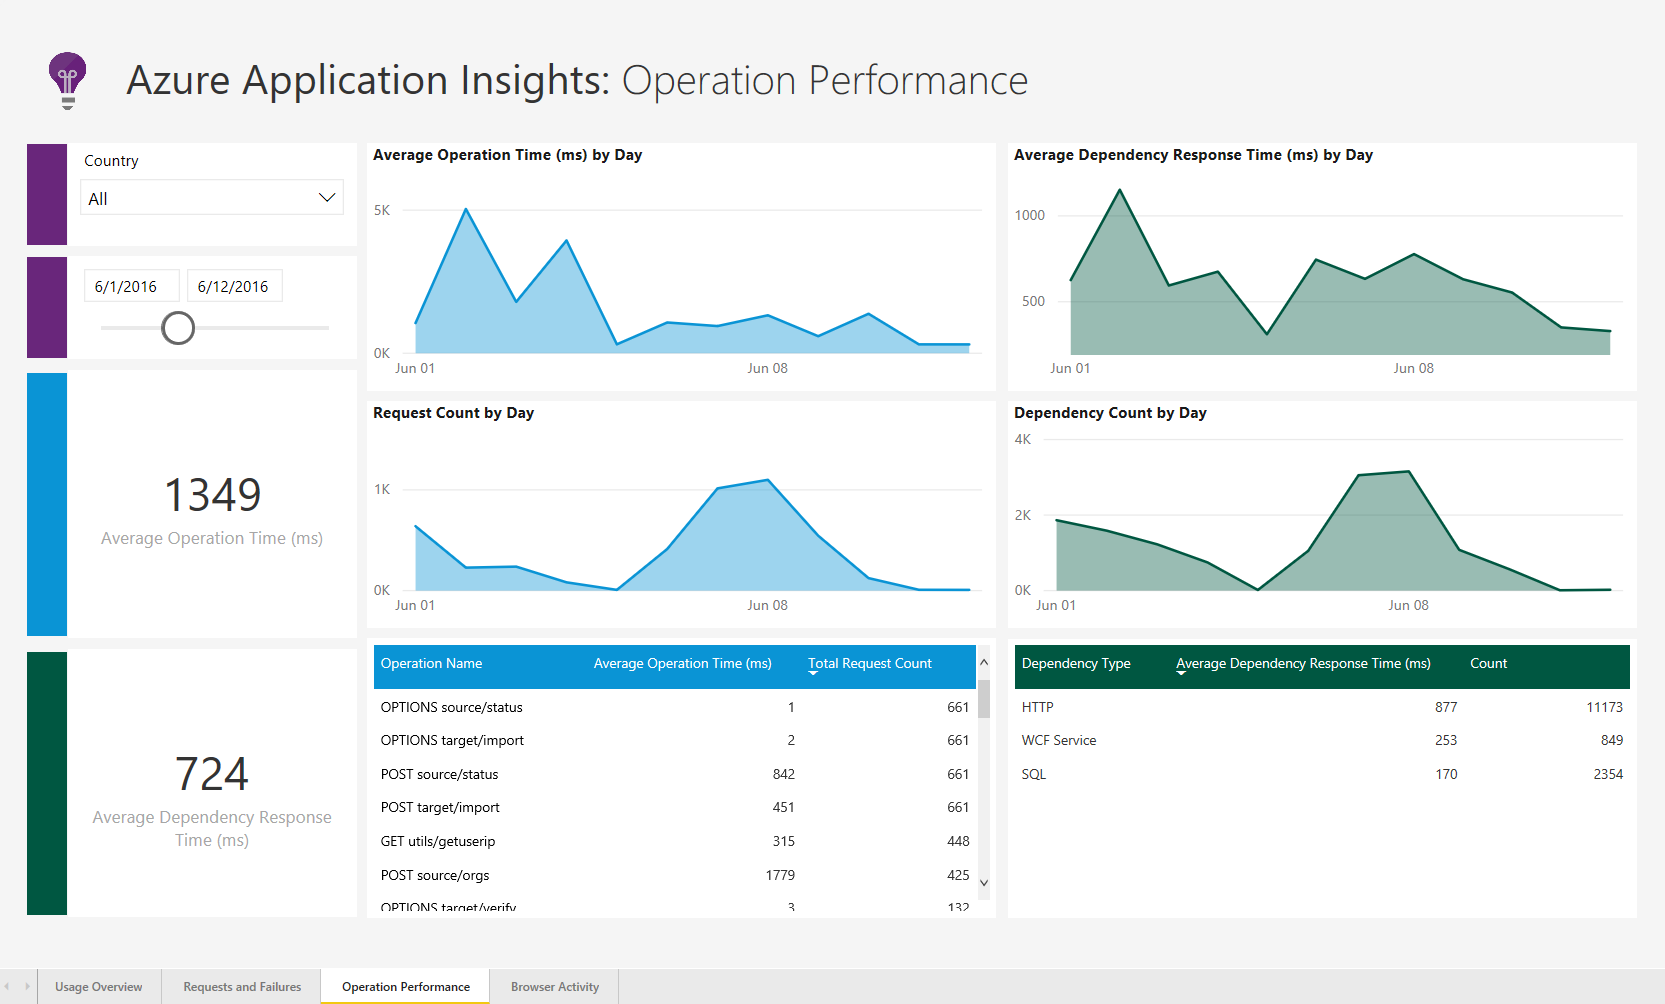 AppInsightsSolnTemplate OperationPerformance Announcing the Power BI Performance Management Solution Template for Azure Application Insights